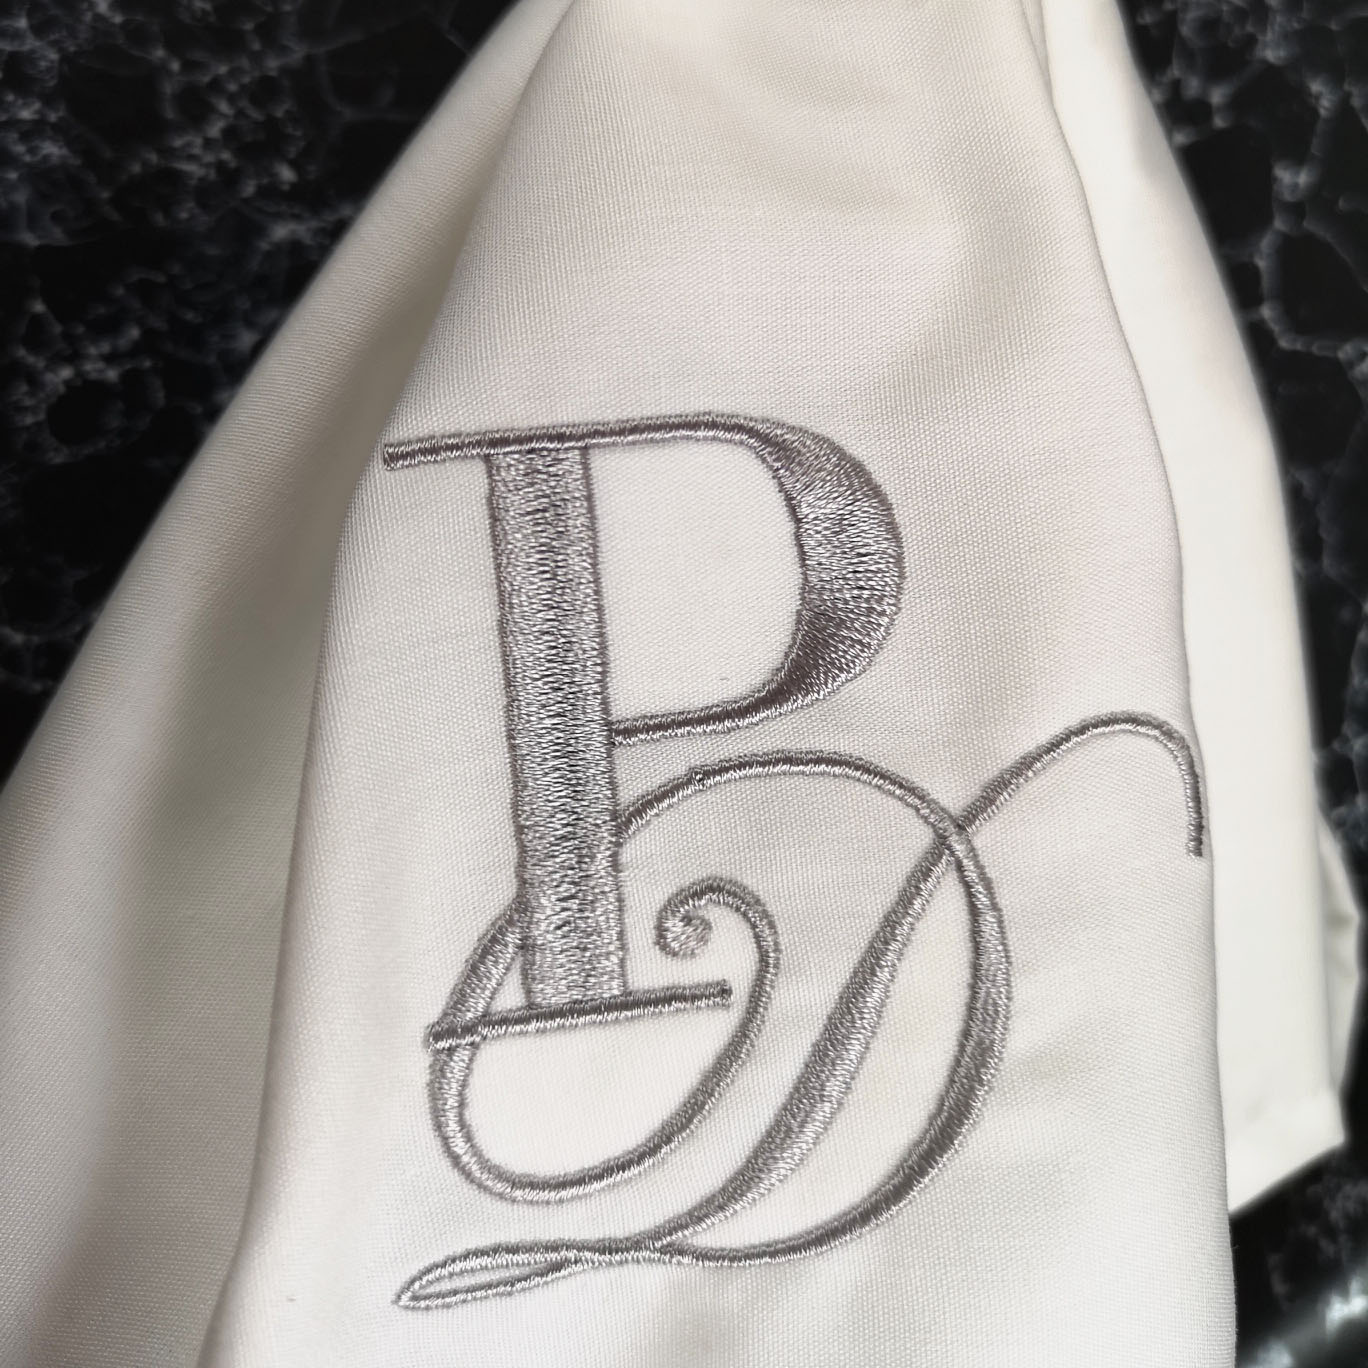 silver monogram embroidery